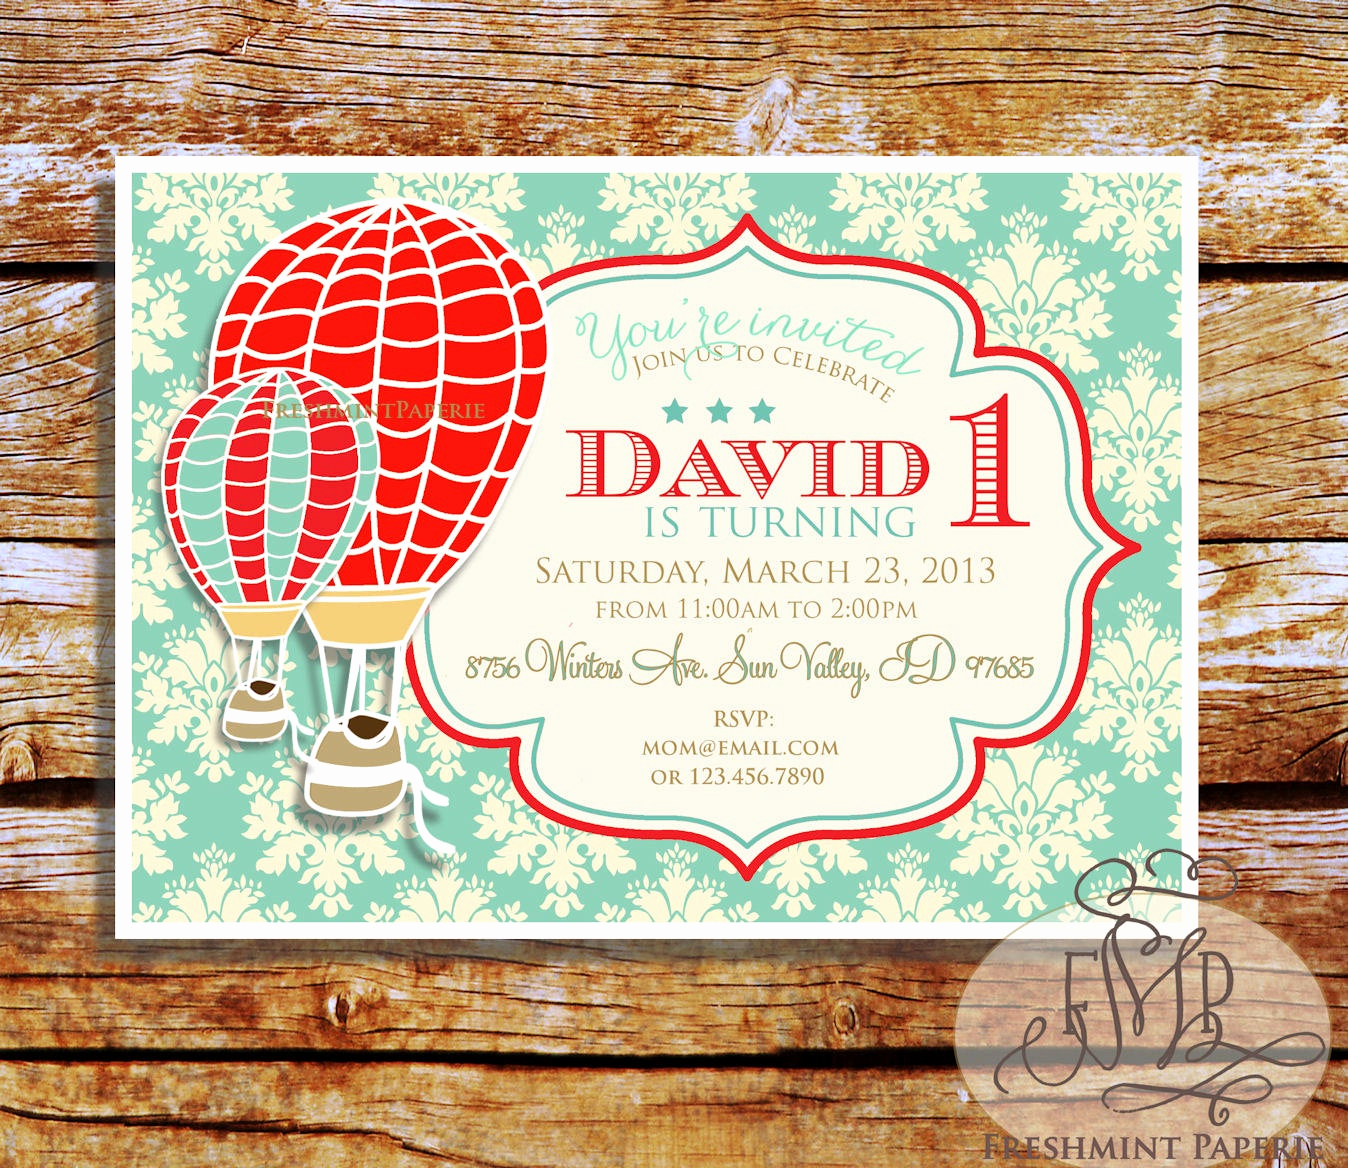 Hot Air Balloon Invitation Unique Printable Invitations Hot Air Balloon Invitation Vintage